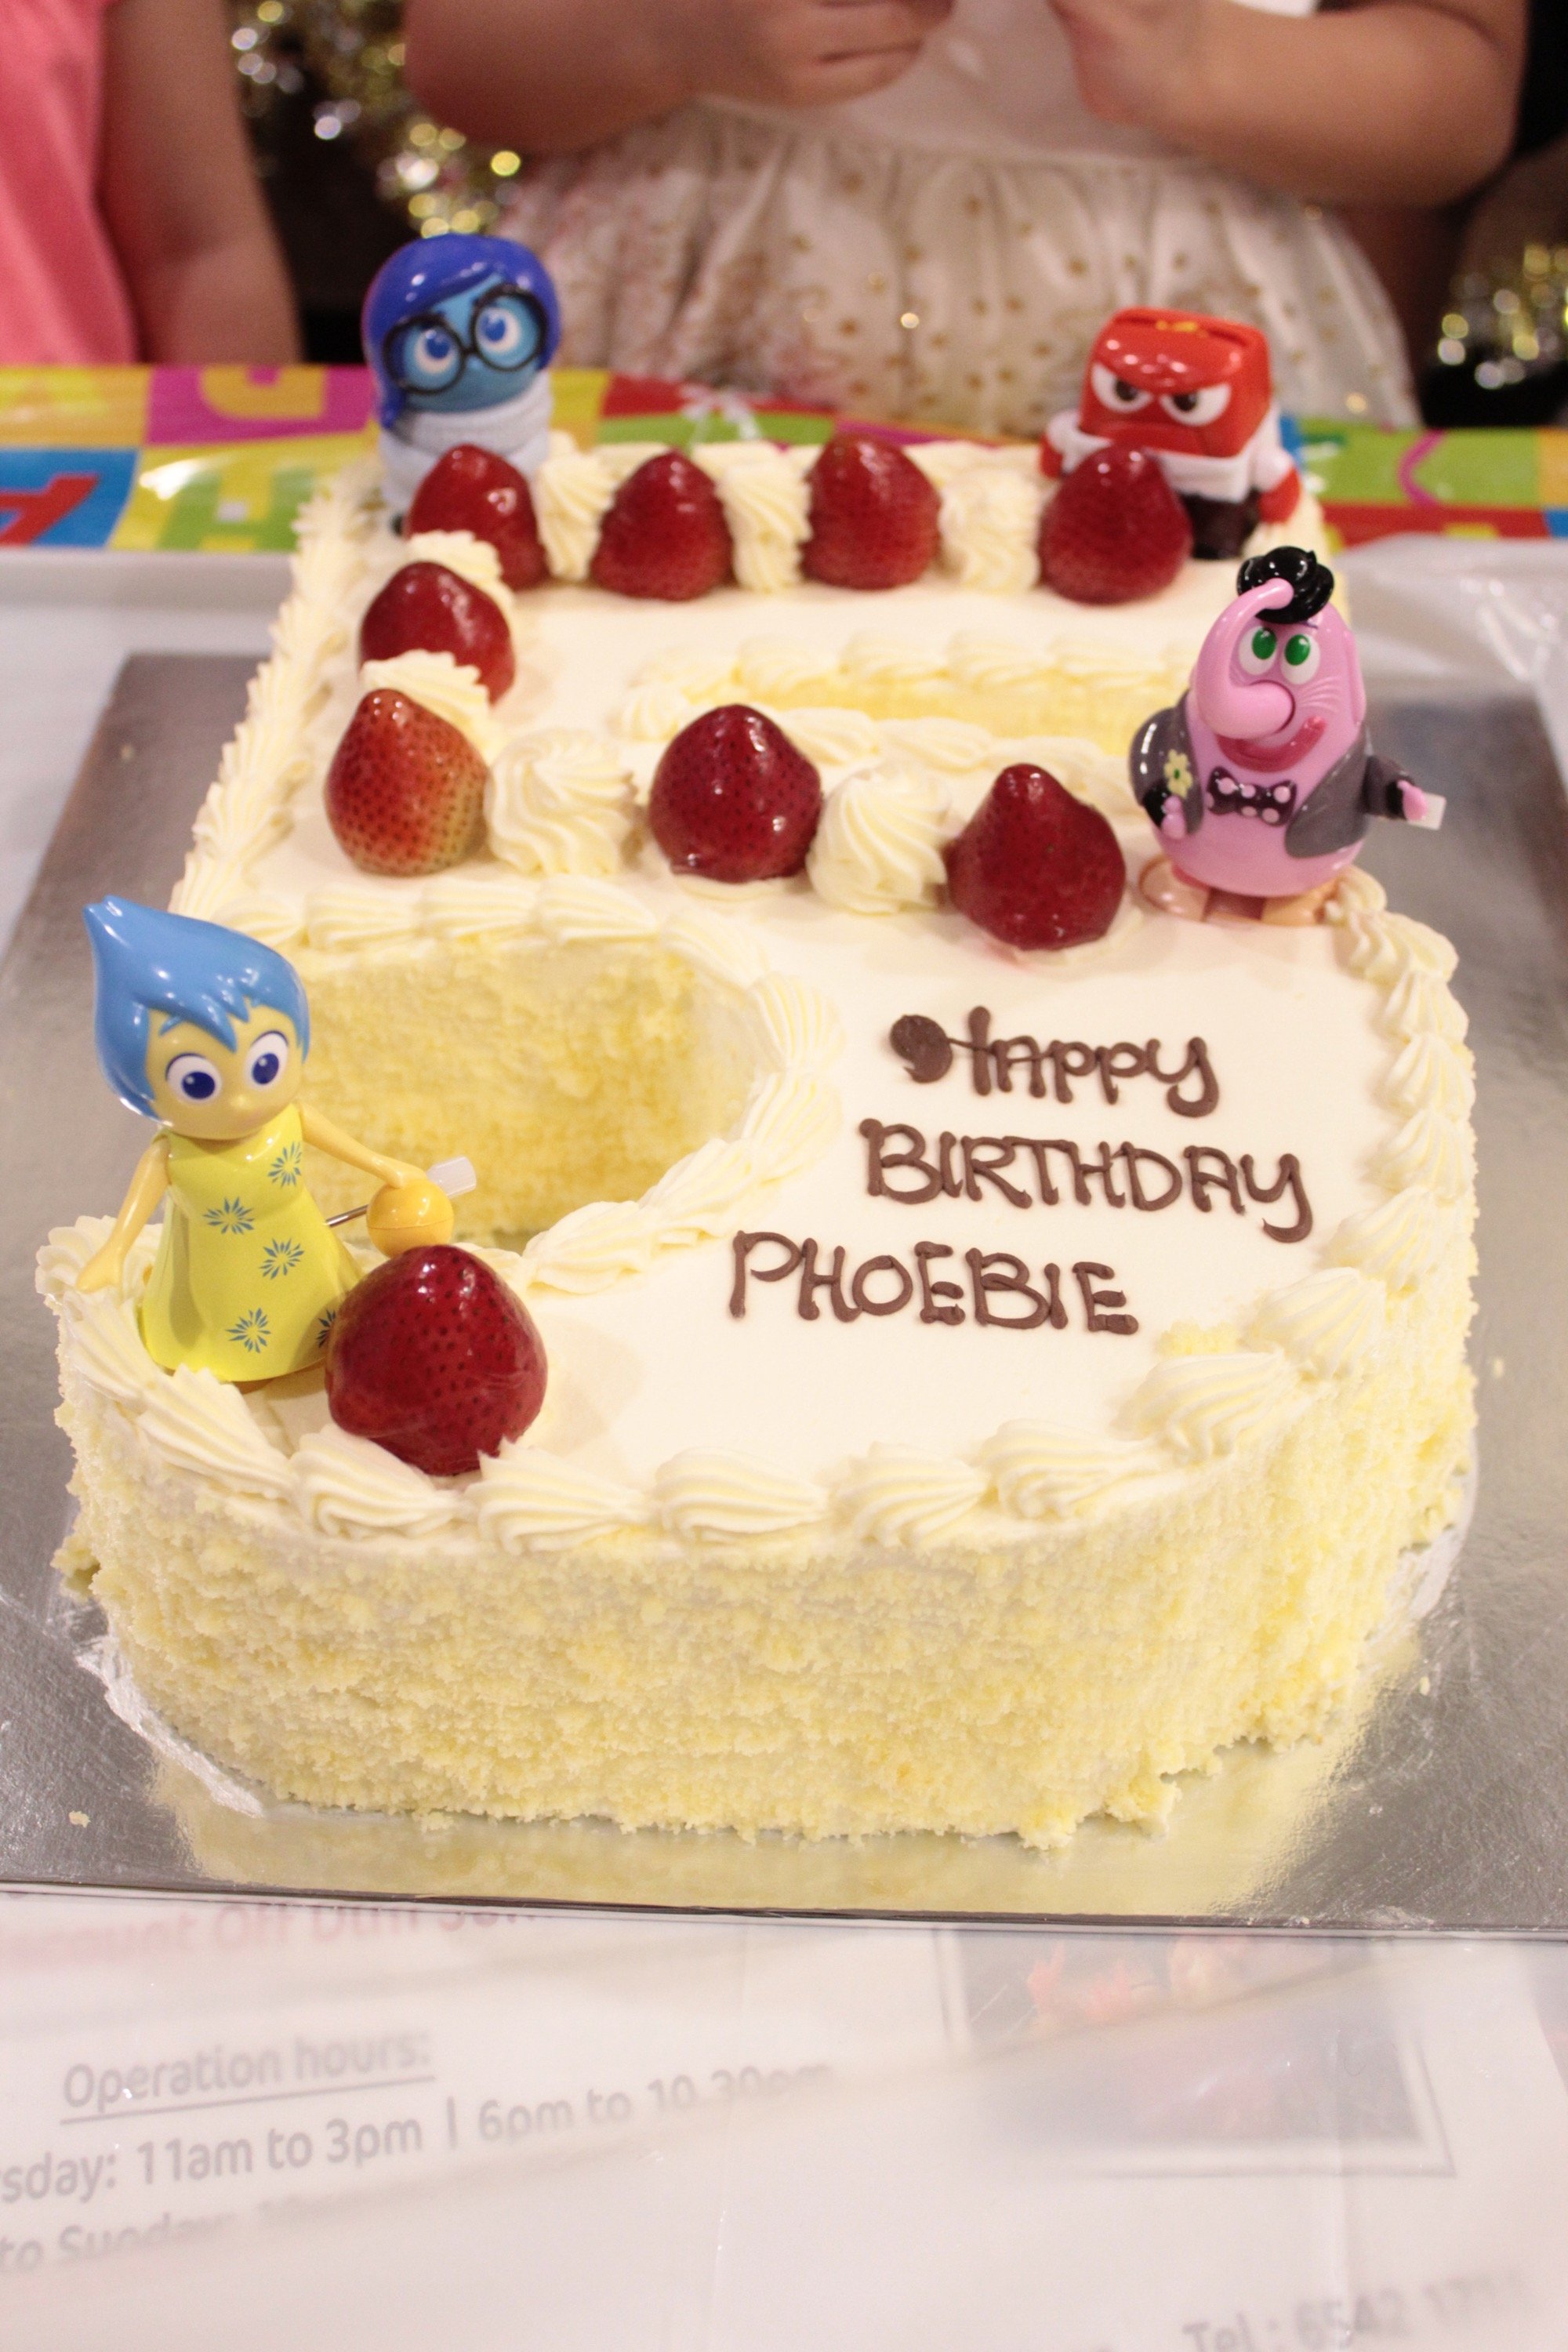 Magnificent Phoebies 5Th Birthday The Cake Mummy Priscilla Funny Birthday Cards Online Elaedamsfinfo